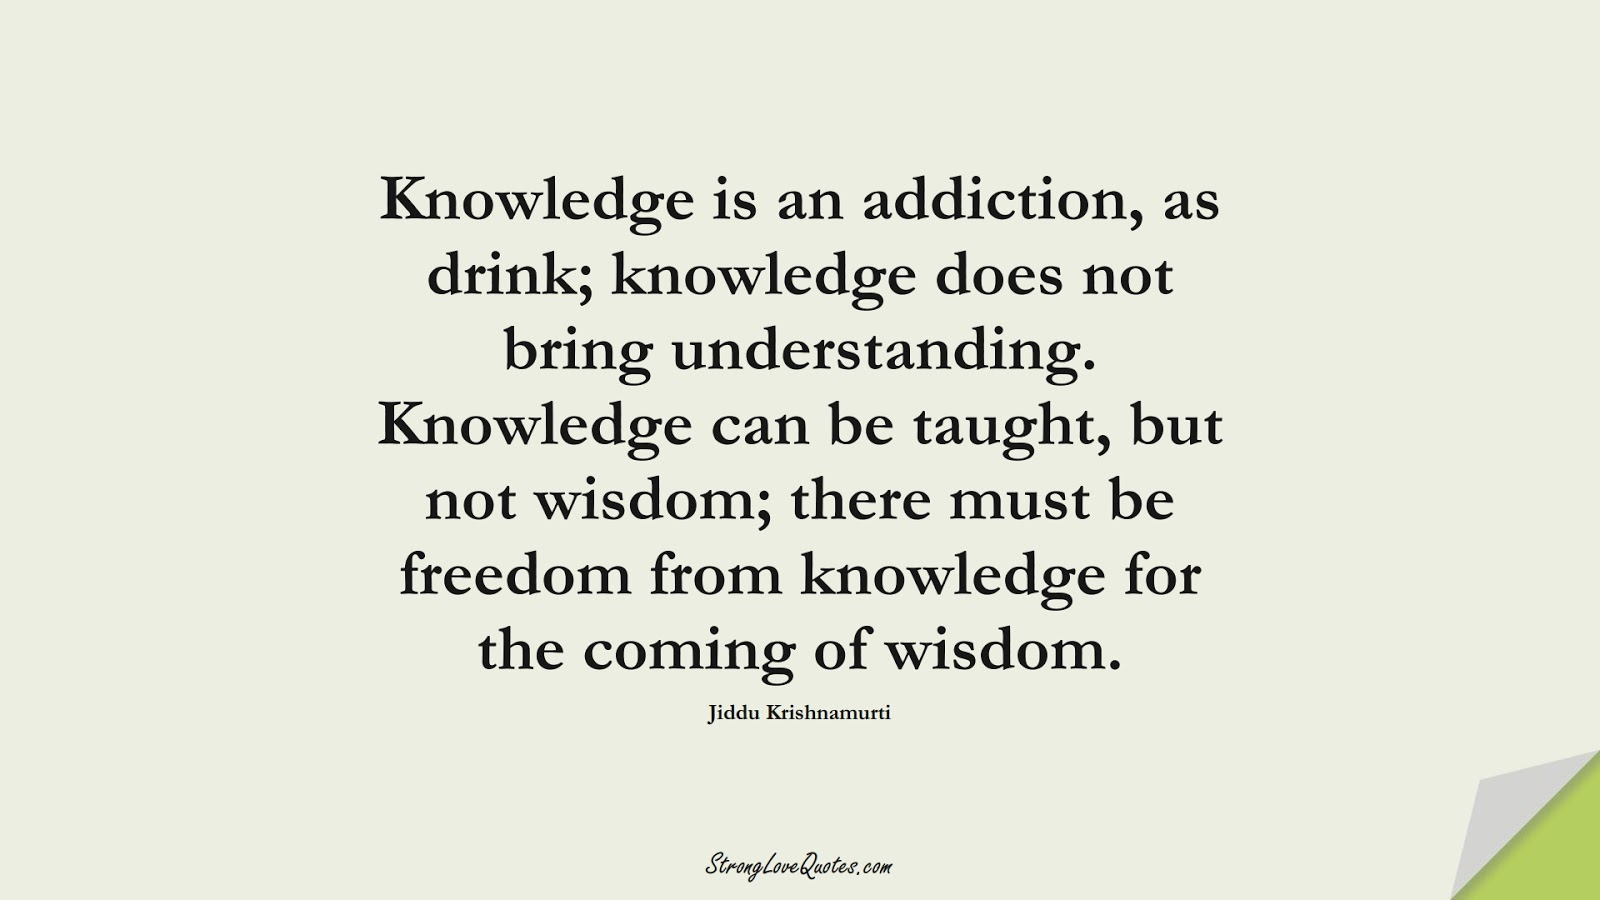 Knowledge is an addiction, as drink; knowledge does not bring understanding. Knowledge can be taught, but not wisdom; there must be freedom from knowledge for the coming of wisdom. (Jiddu Krishnamurti);  #KnowledgeQuotes